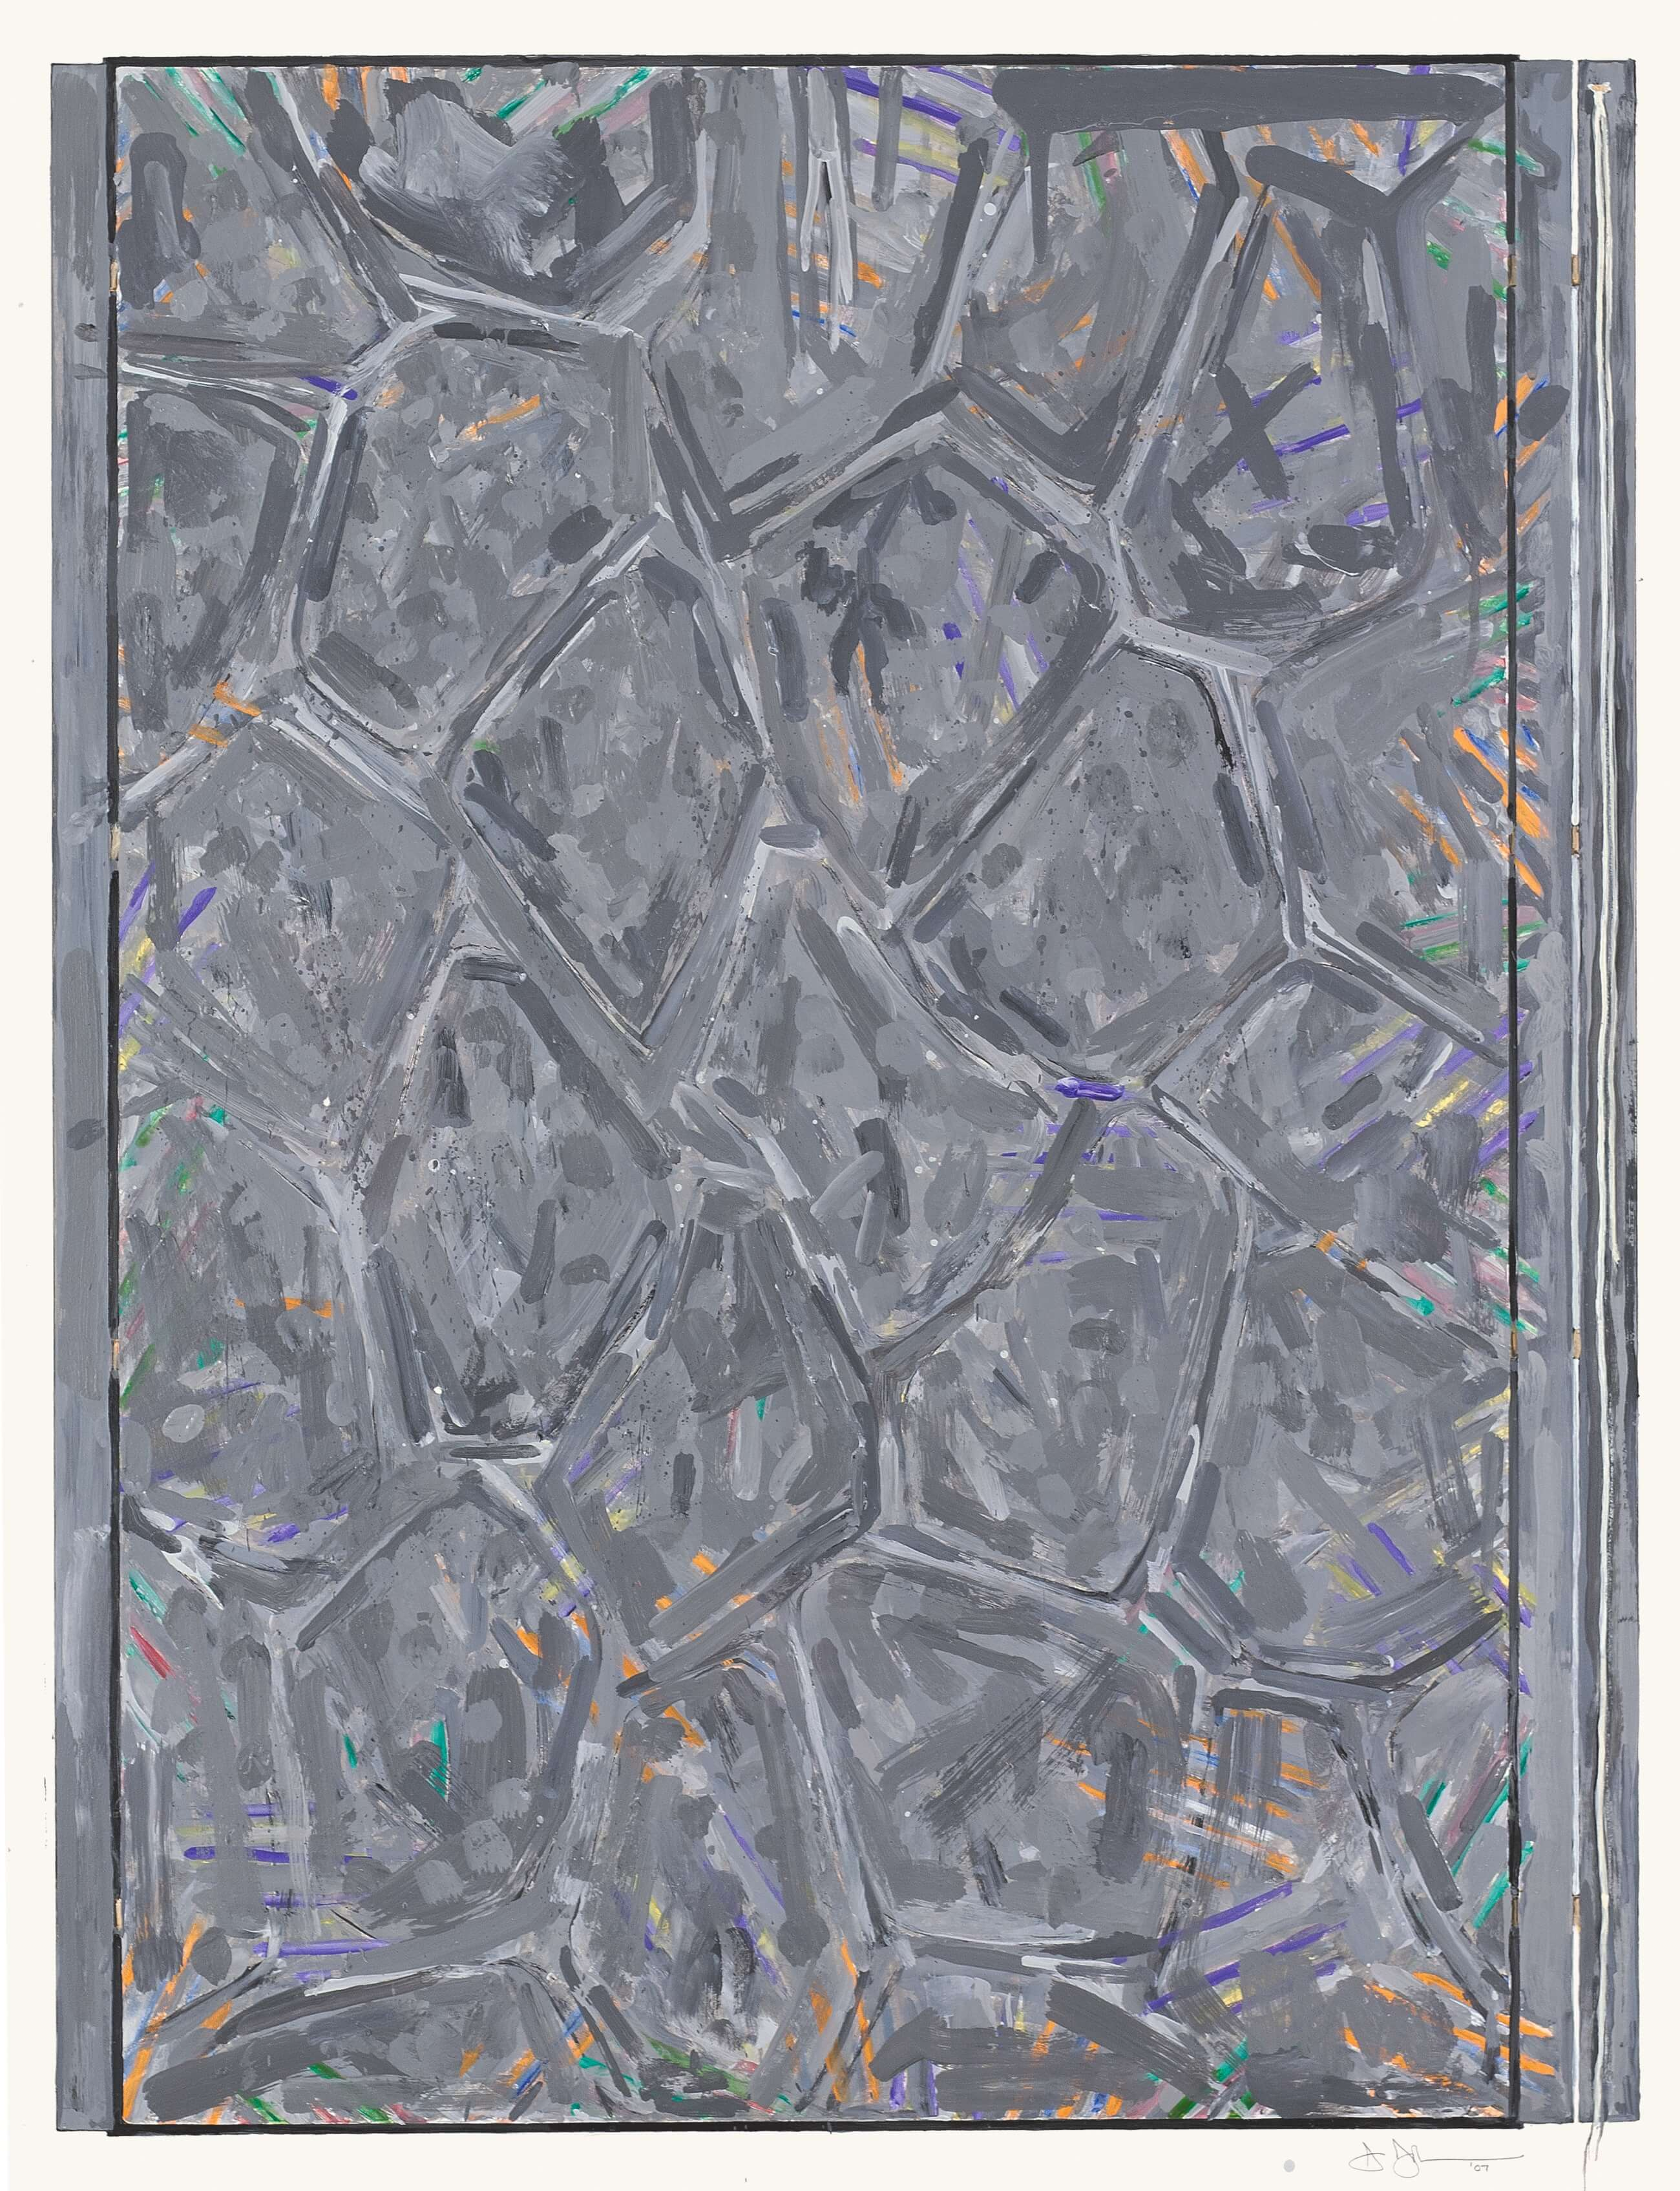 Within, 2007, by Jasper Johns